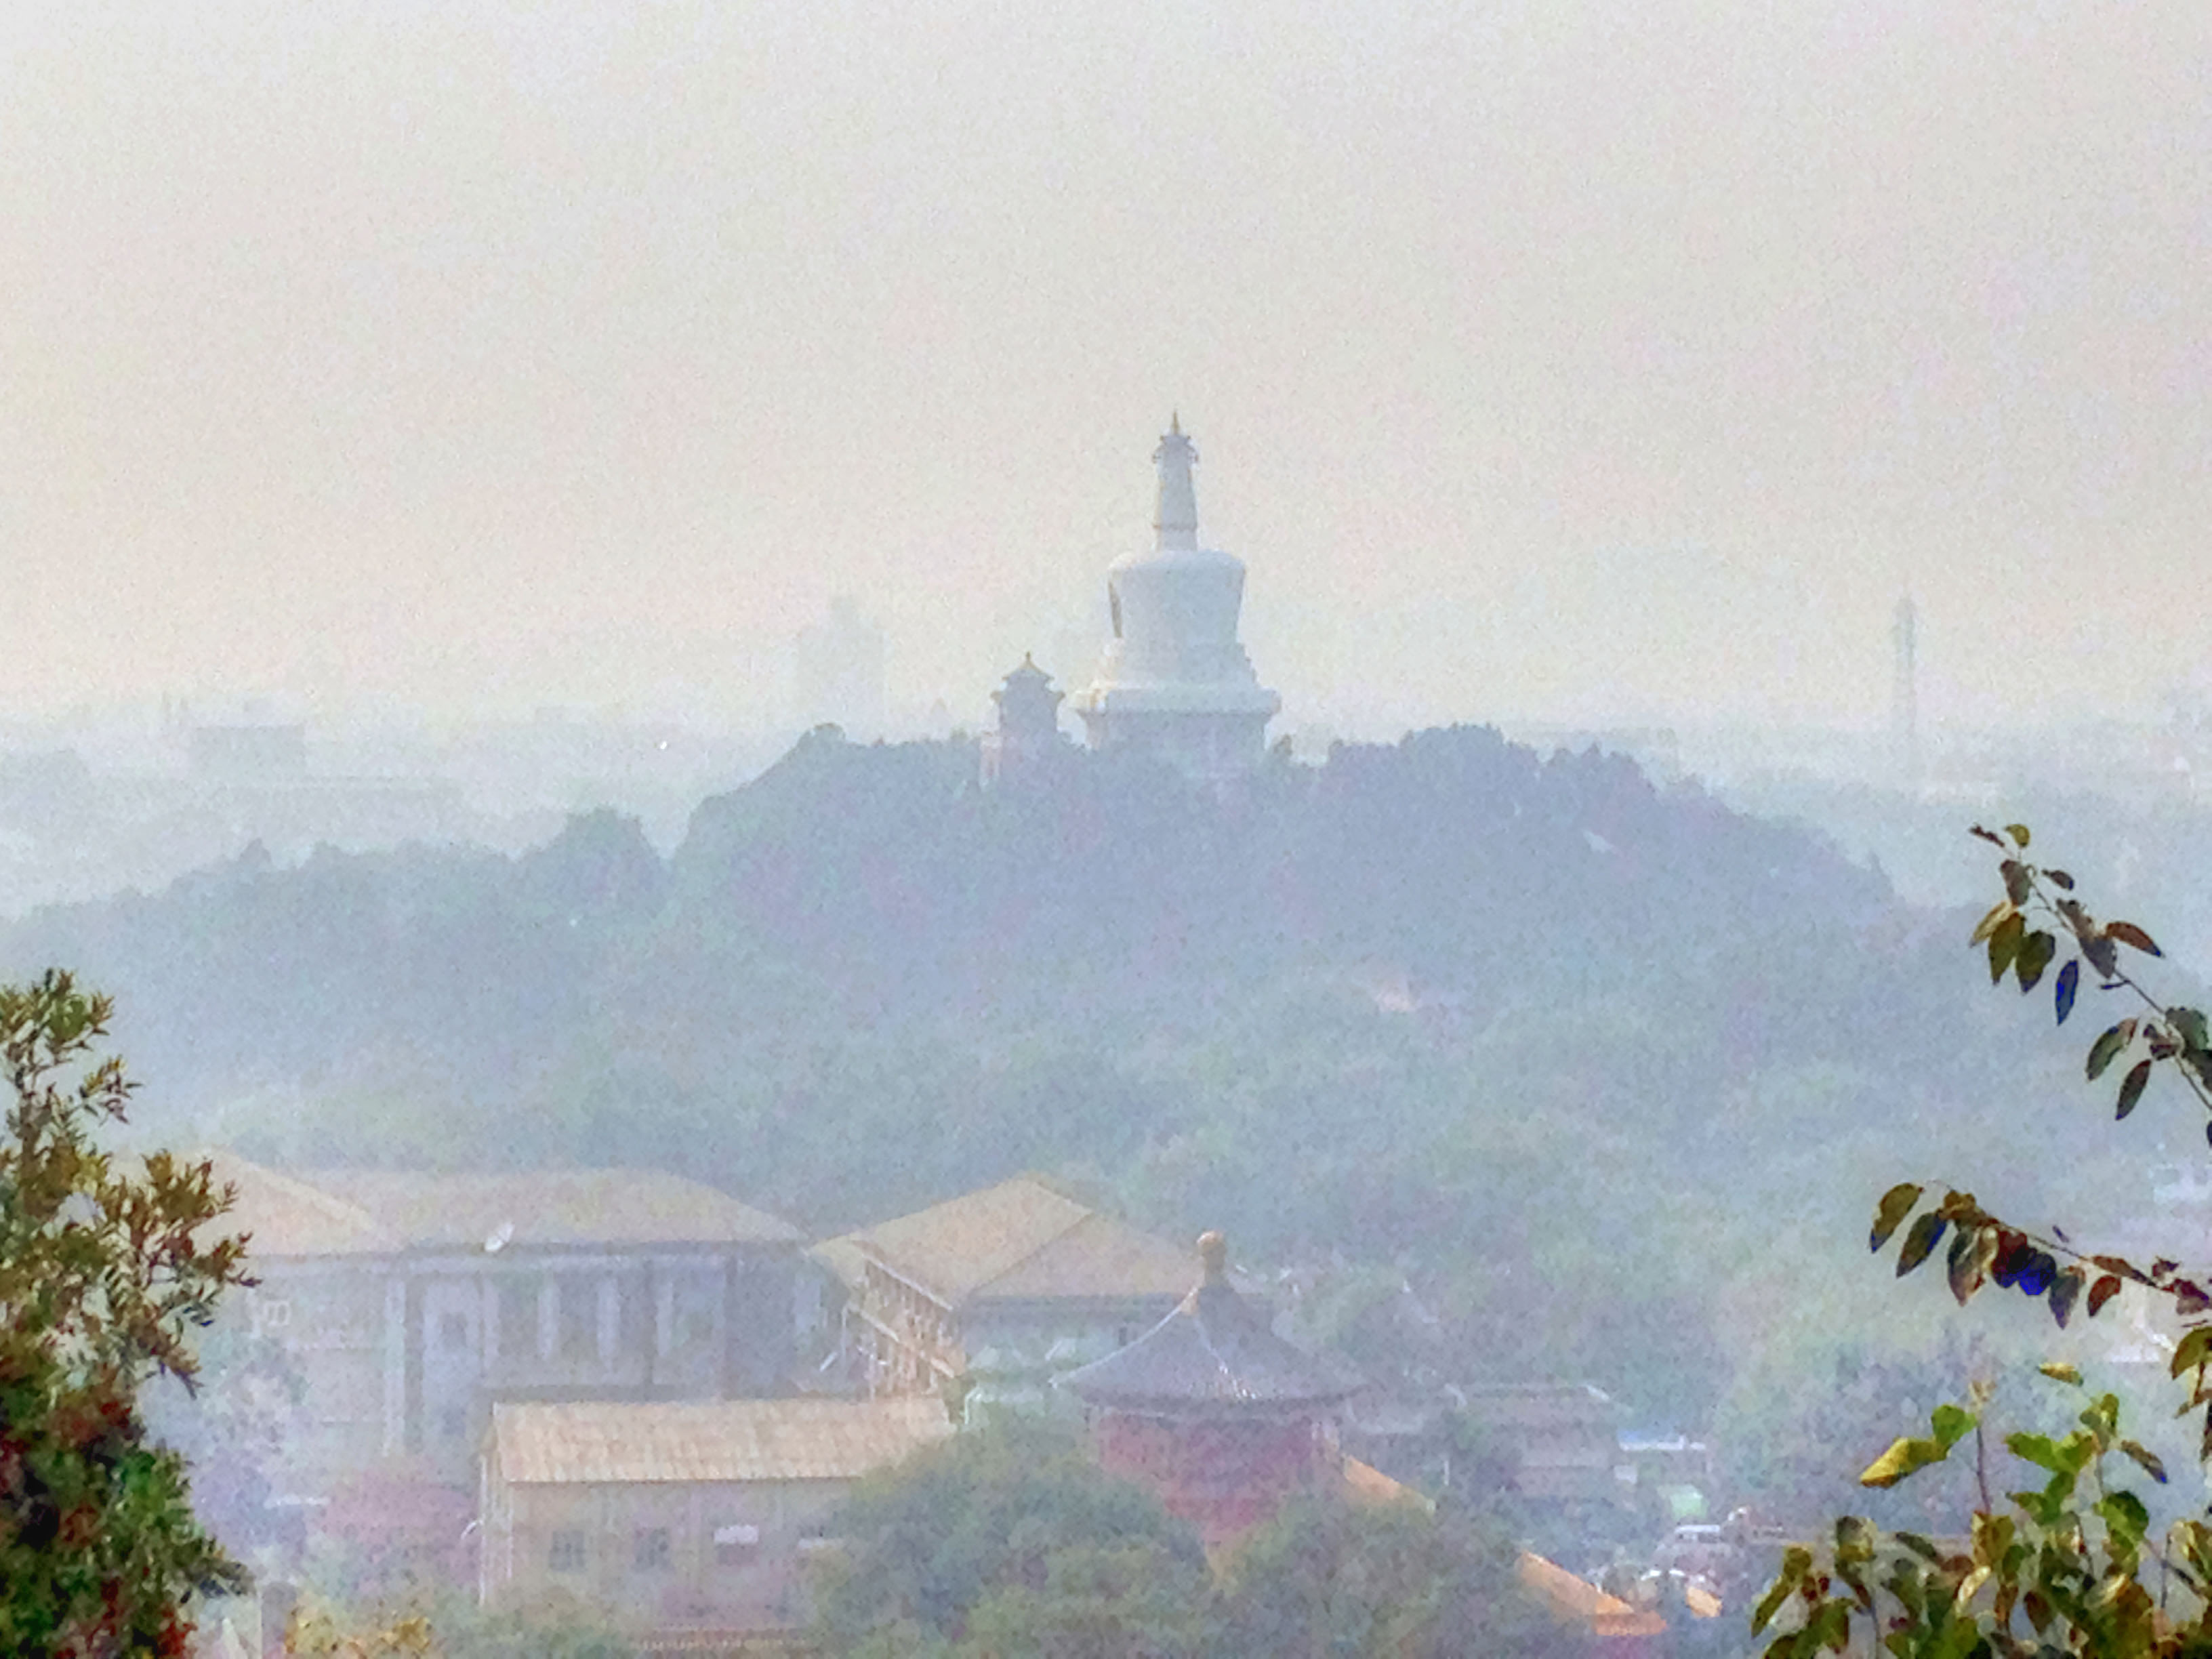 Smog obscuring the view of the white pagoda in Beijing, China.